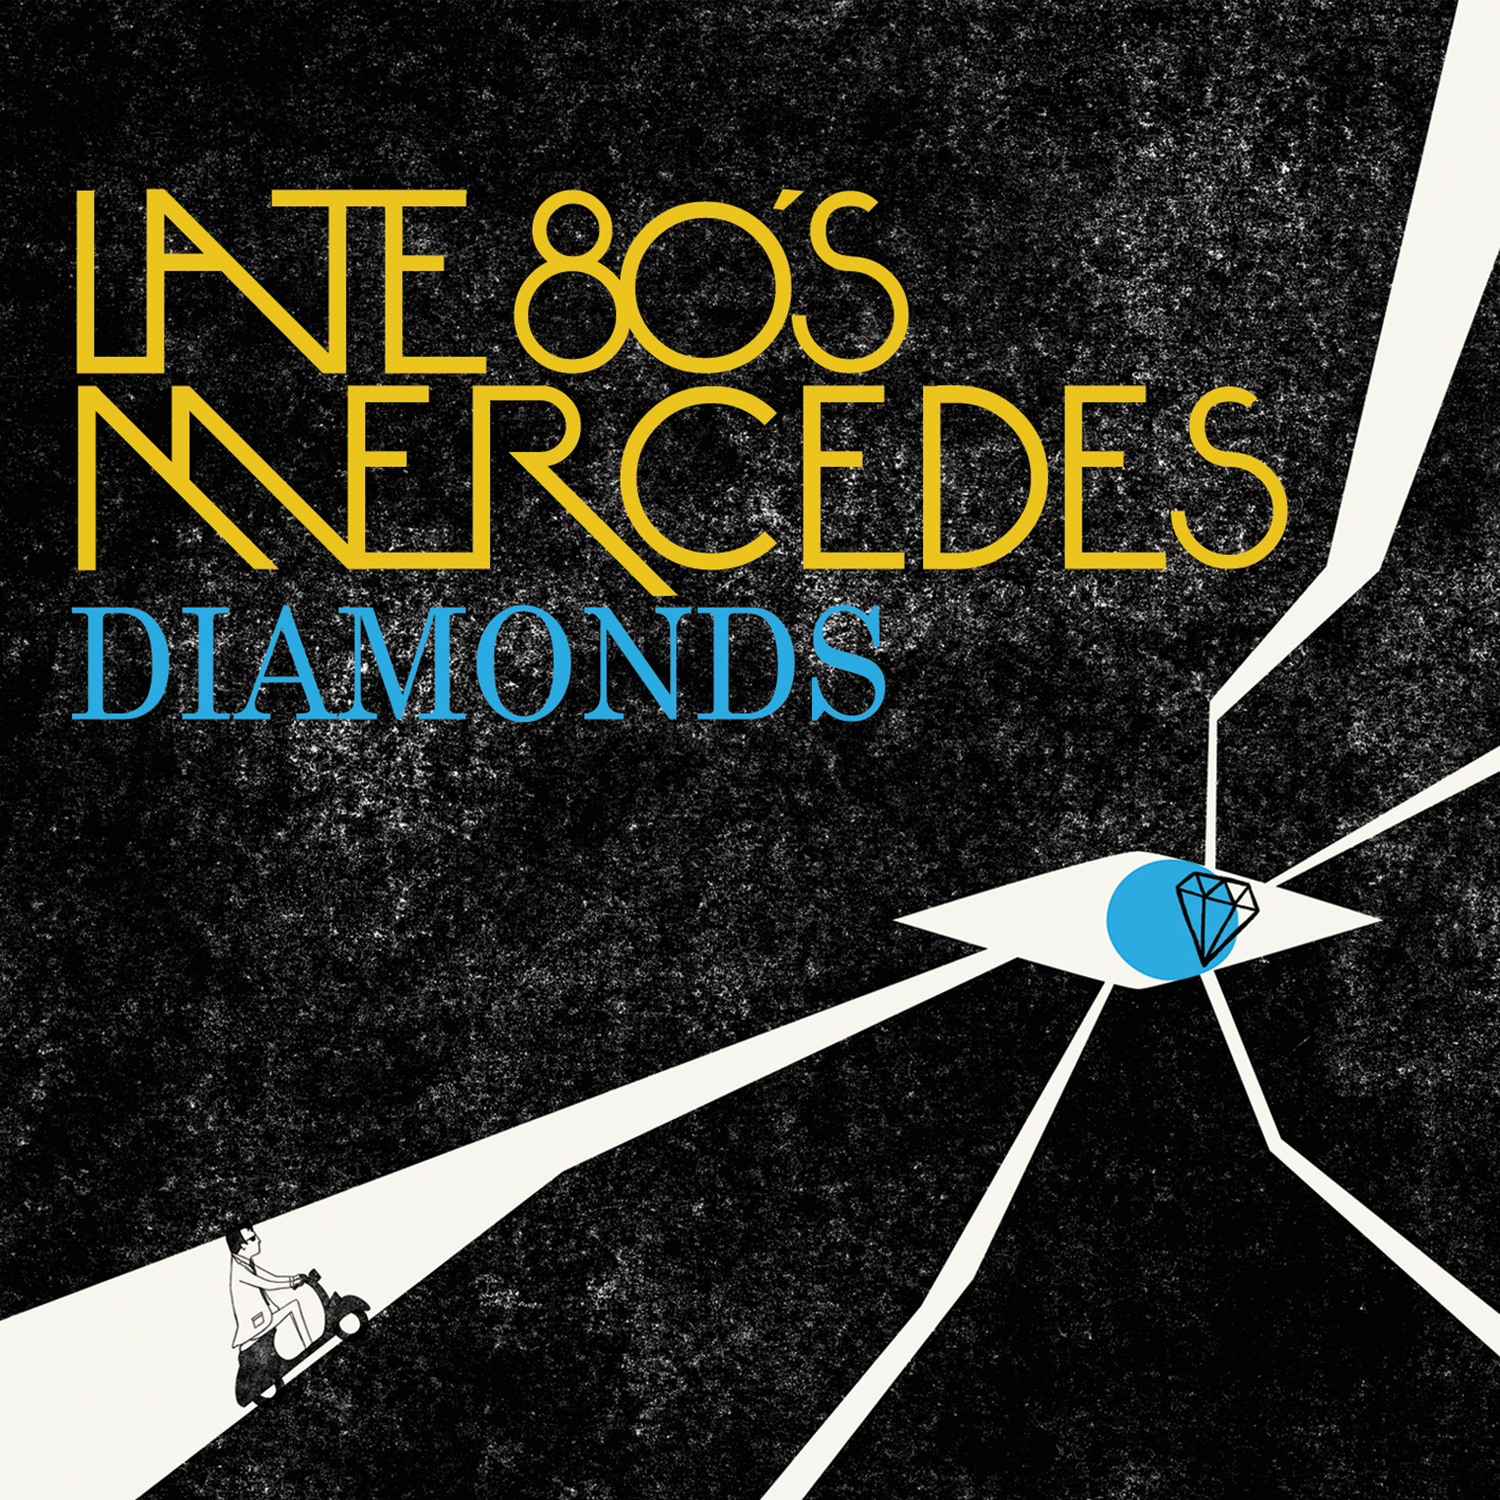 AK_Late80sMercedes_Diamonds.png